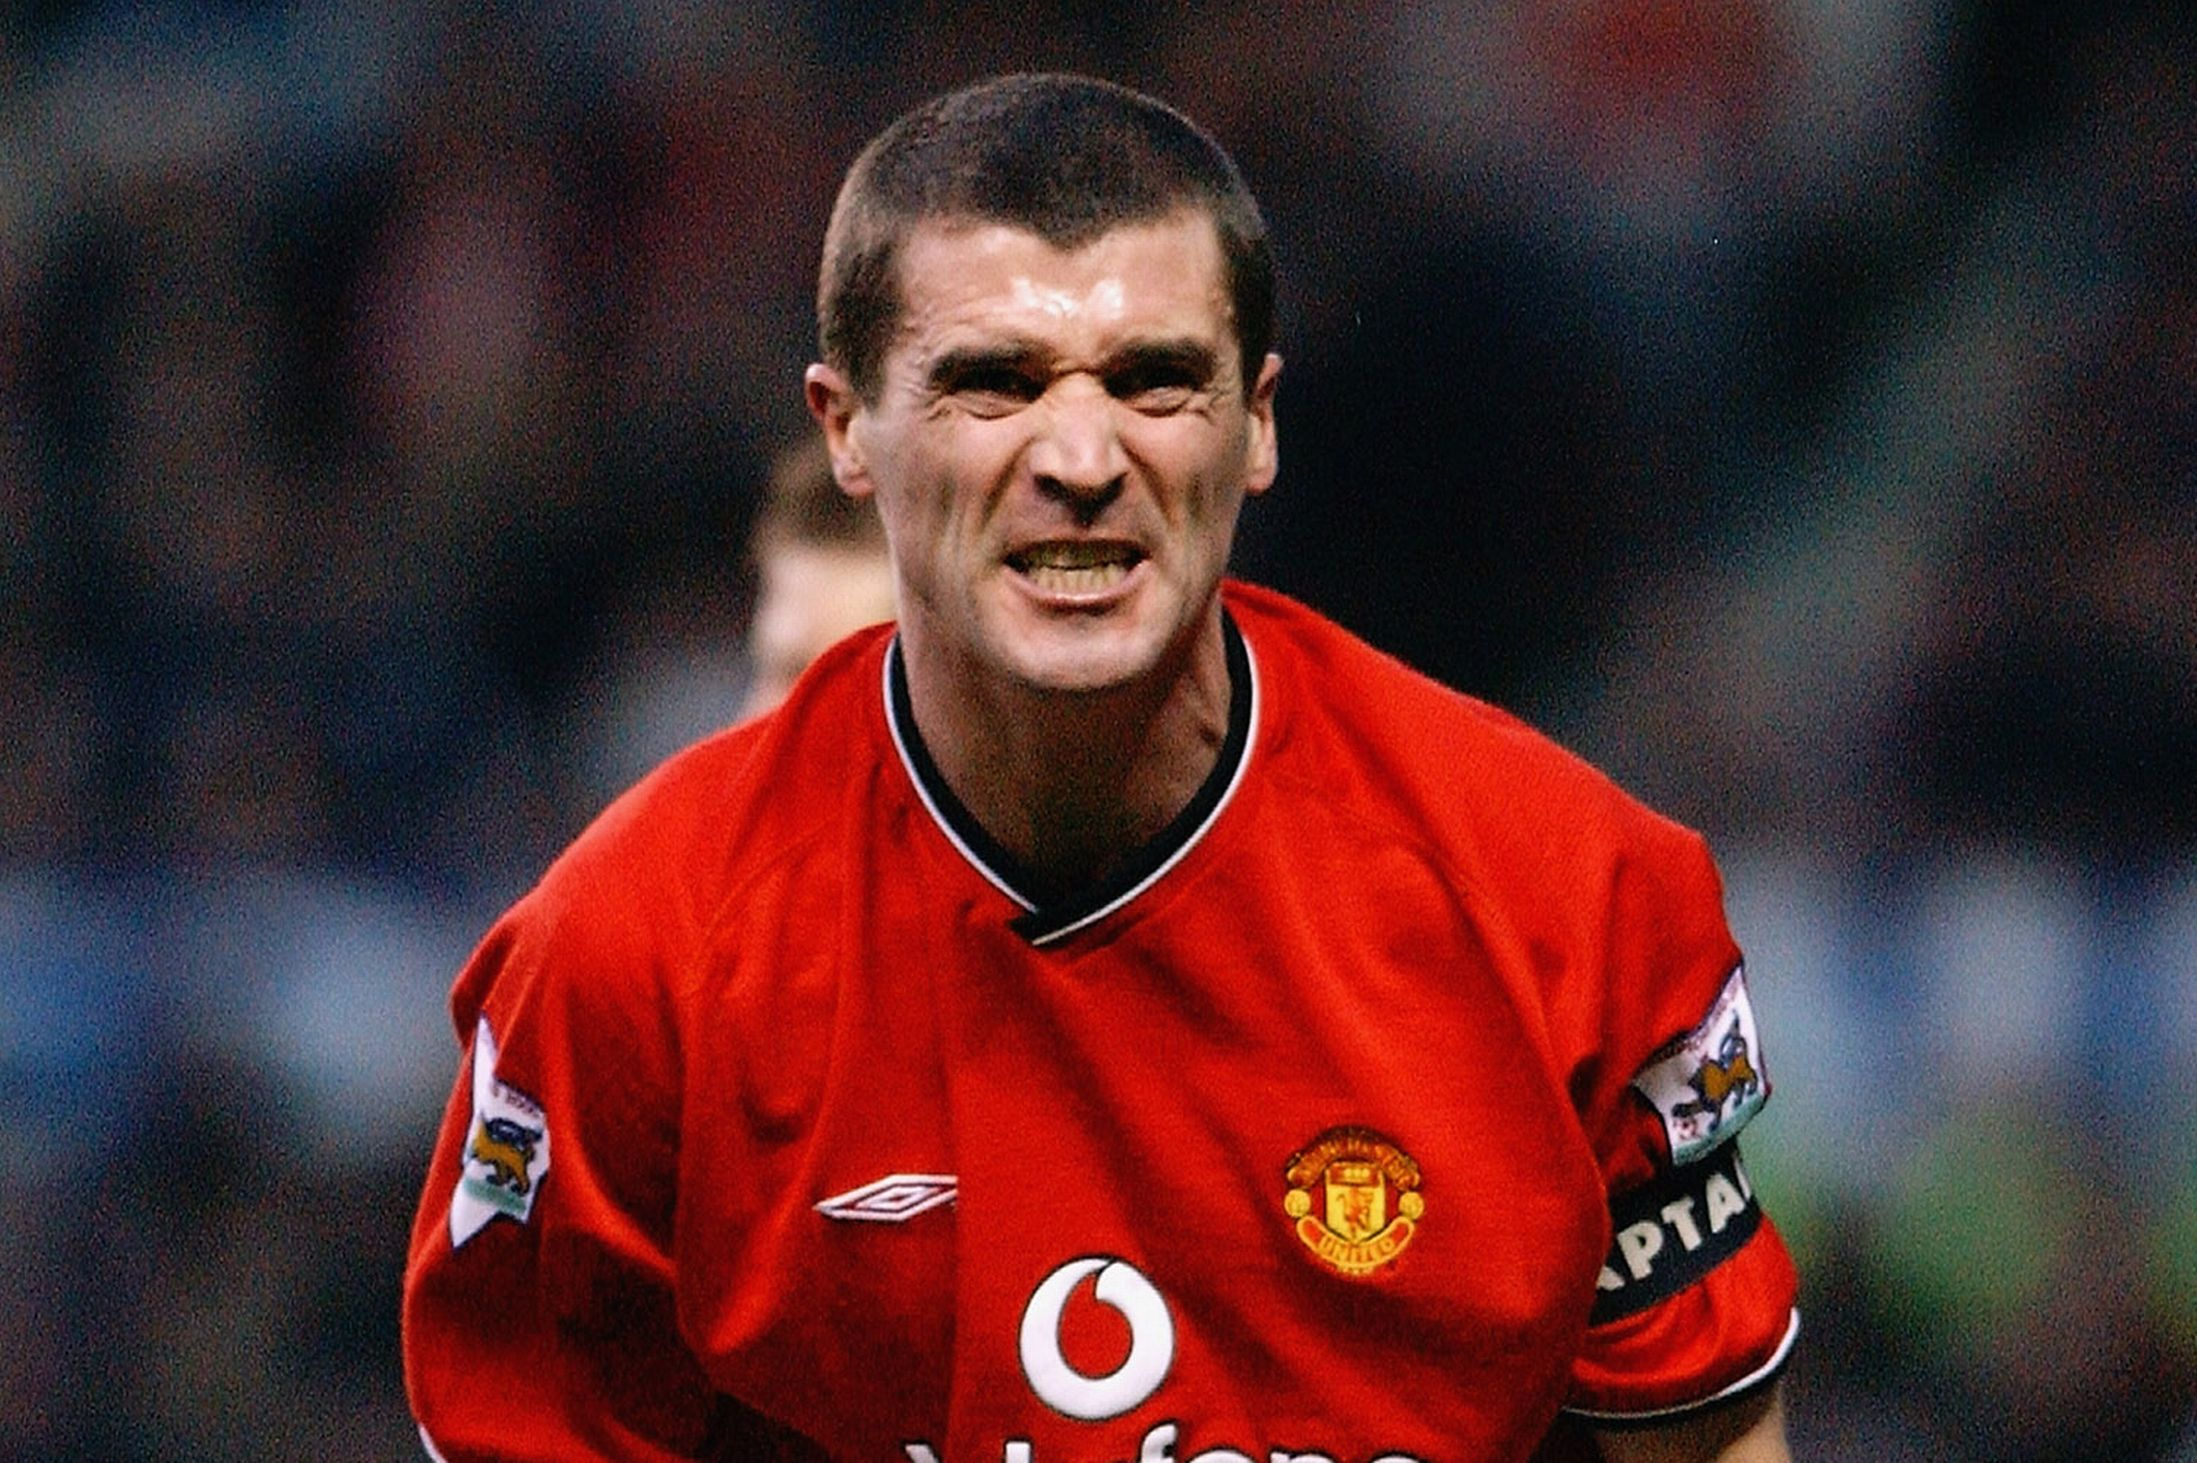 Since Roy Keane left, United has been finding difficulty to replace him.